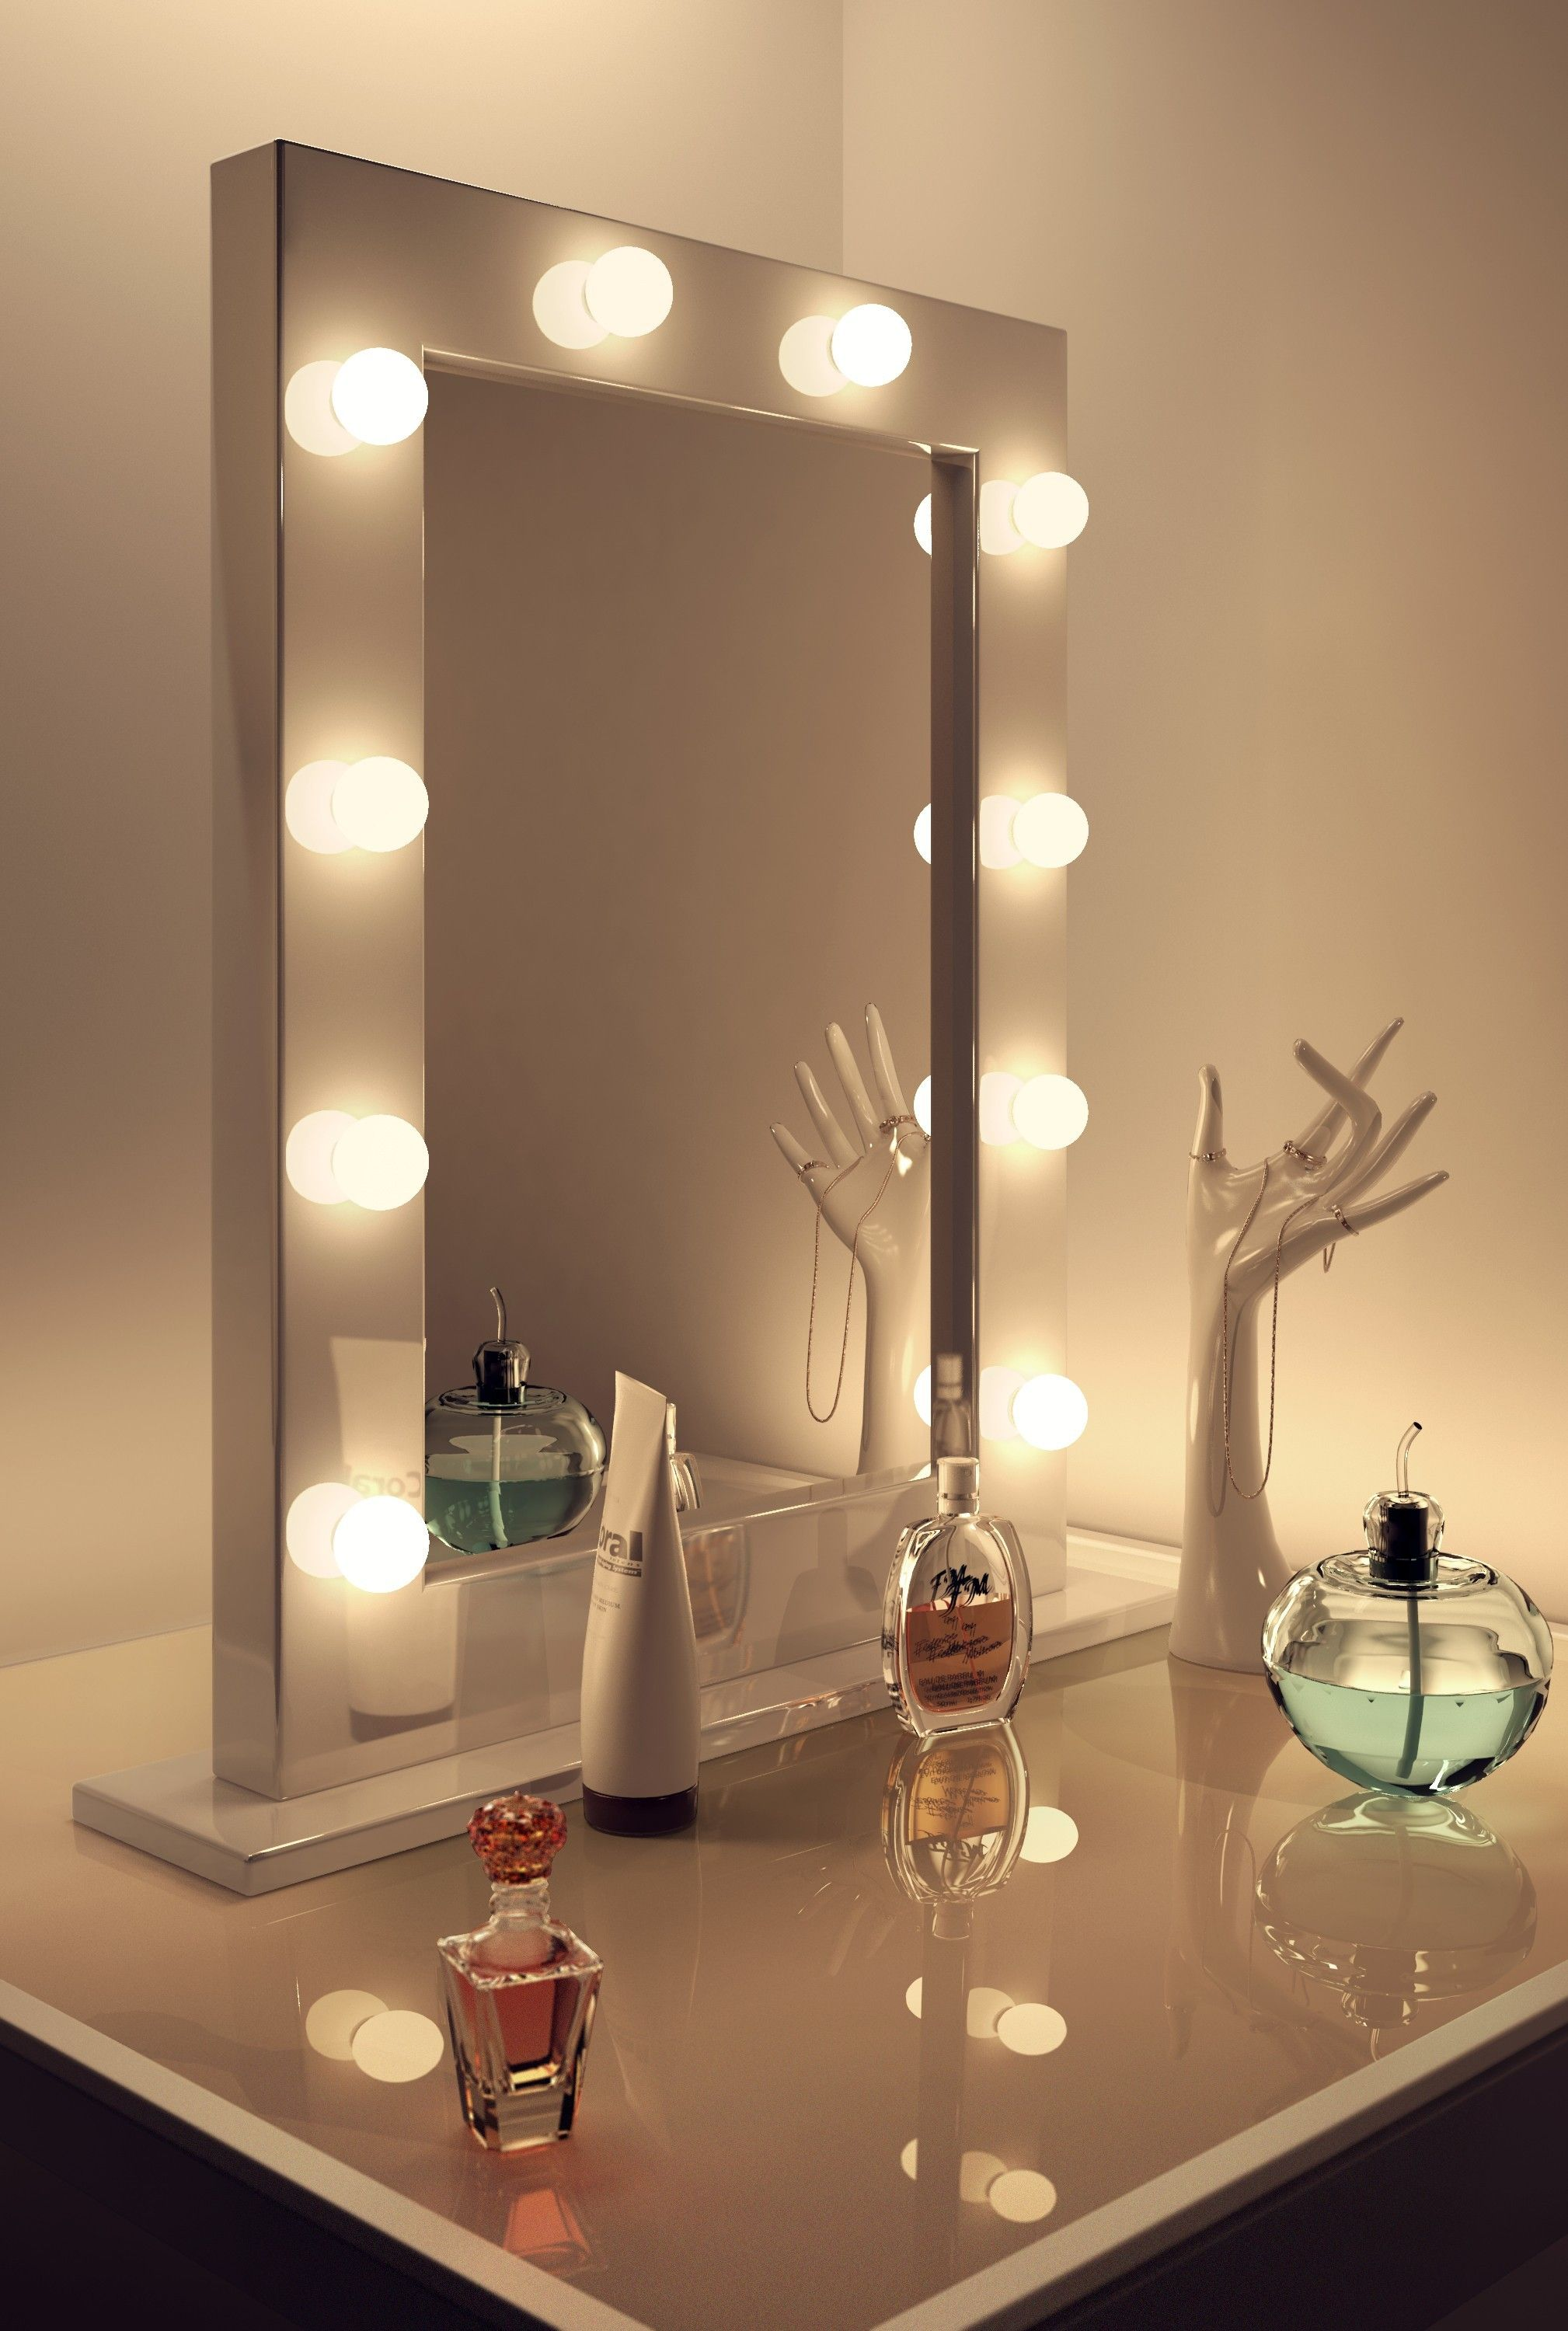 square vanity mirror with lights. light up vanity mirror with lighted round and square  design also table